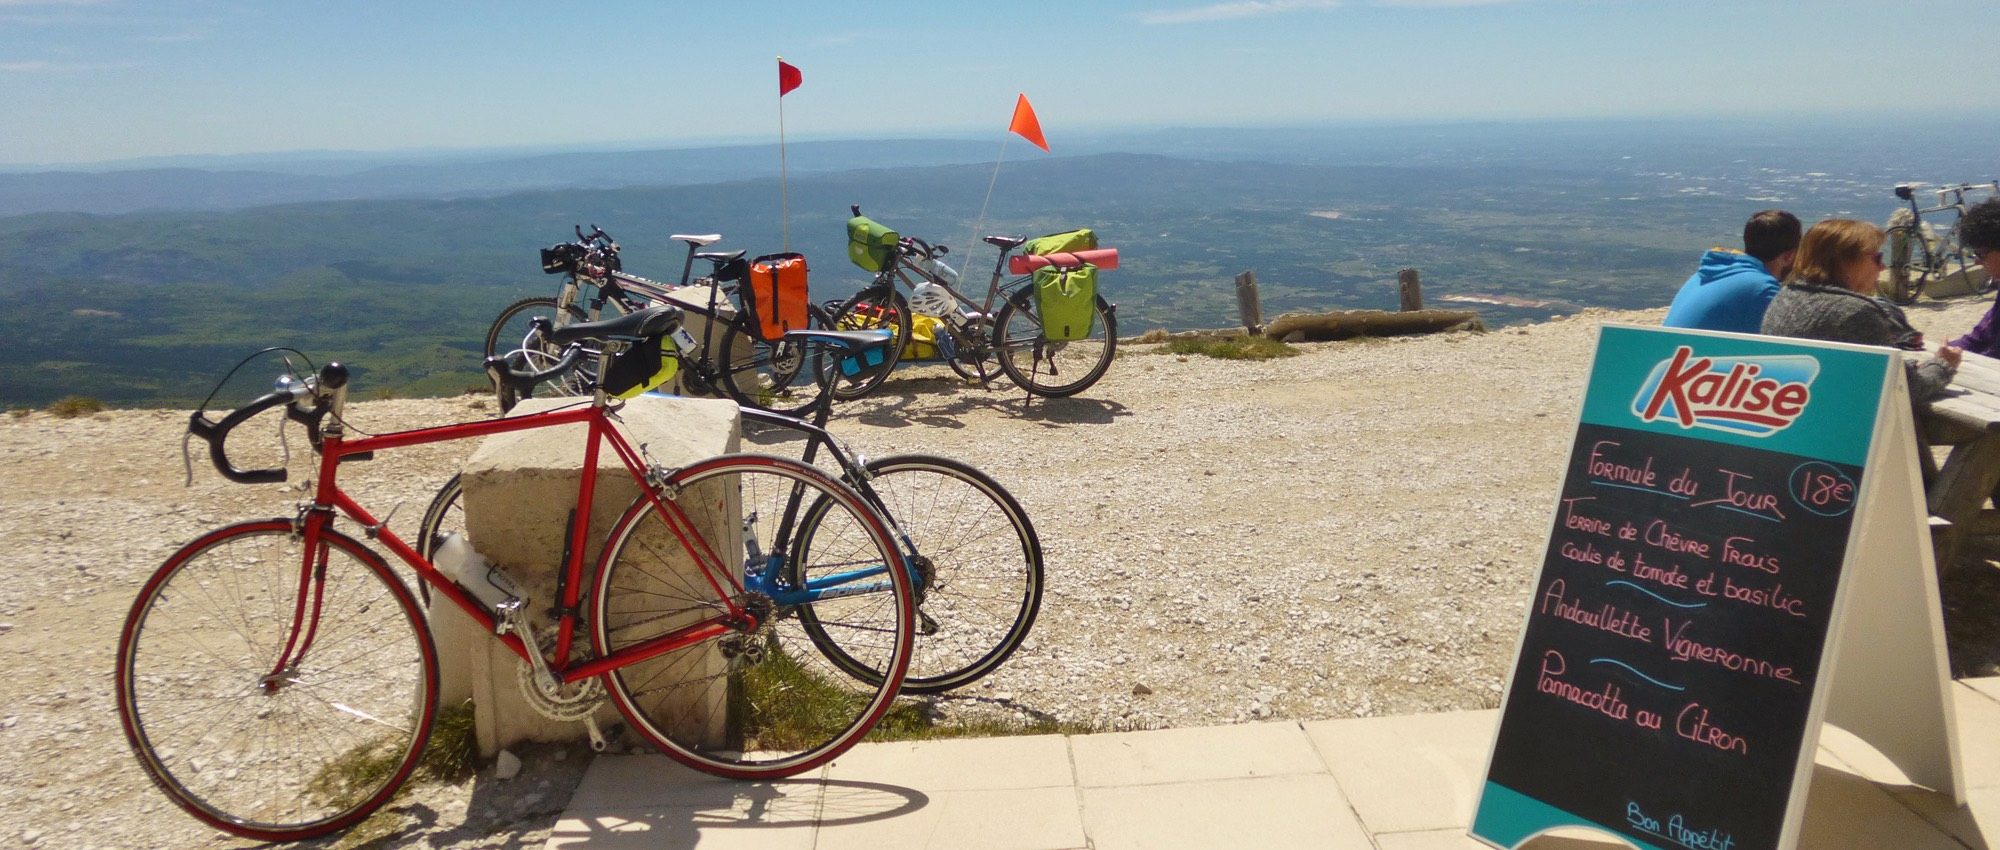 Montpellier to Mont Ventoux - Restaurant Vendran at the summit